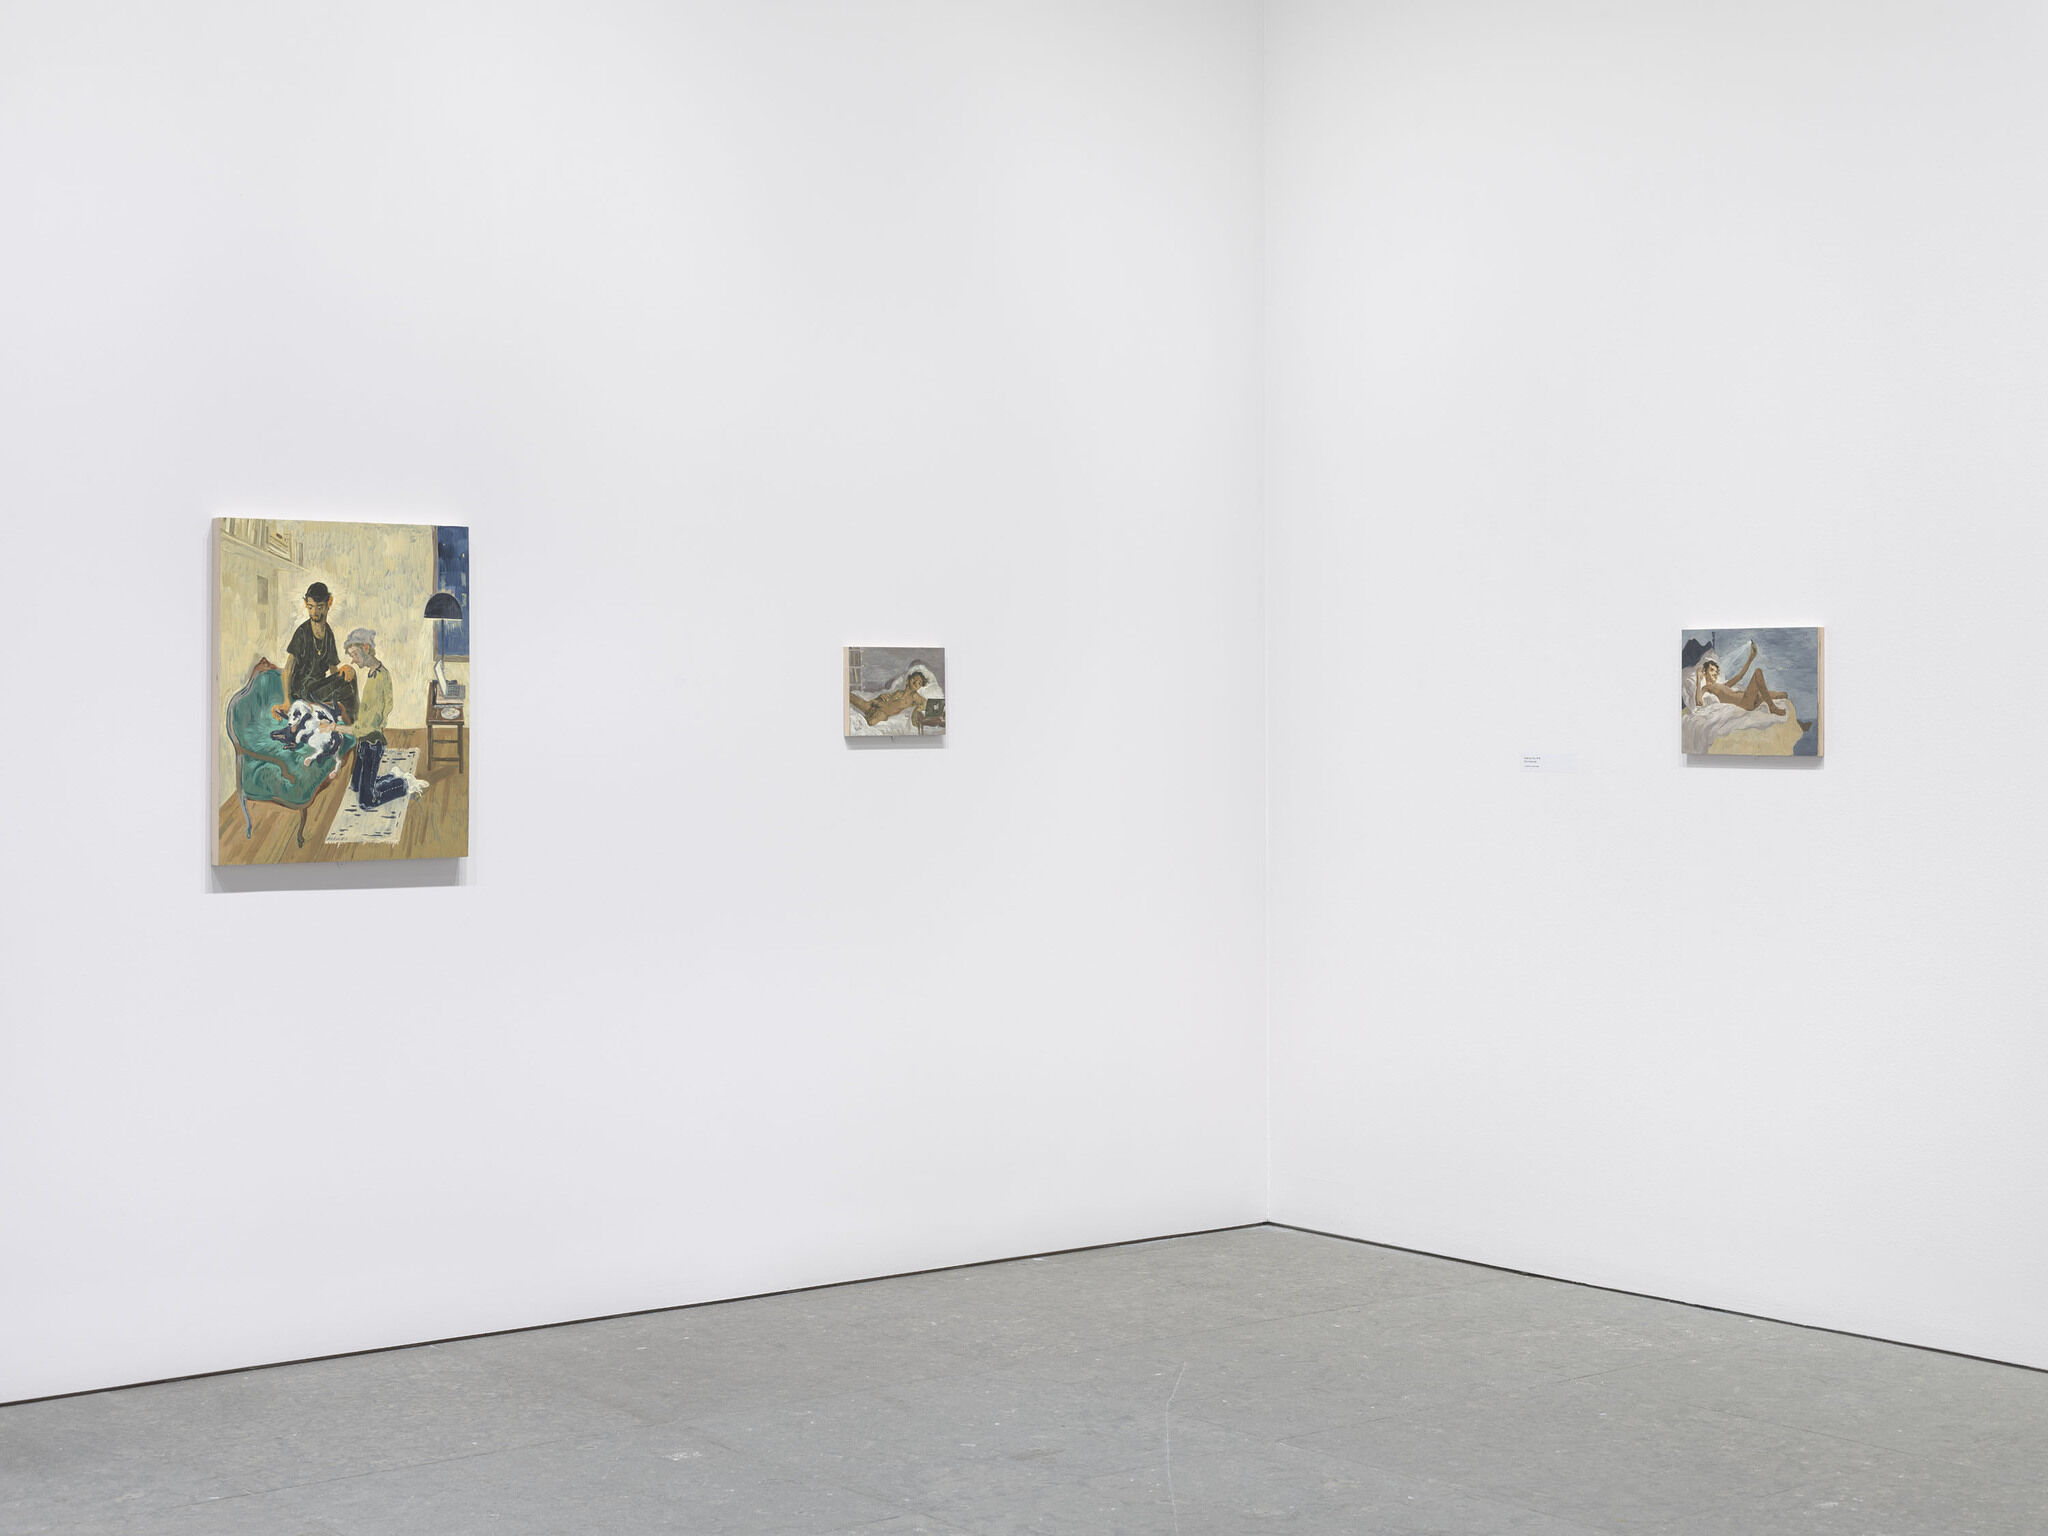 A corner of a gallery with art on the walls.